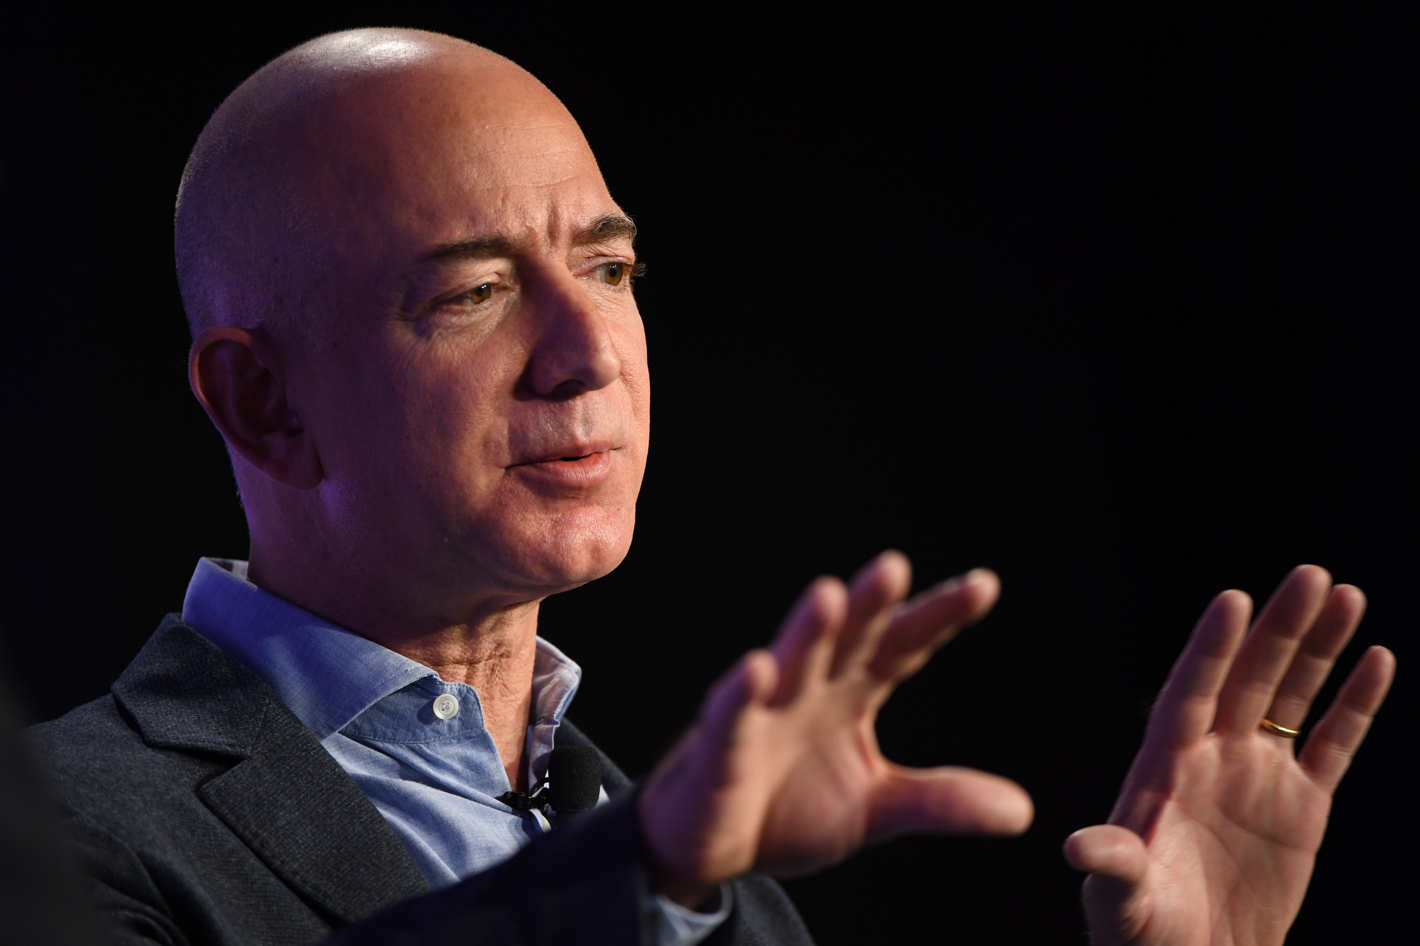 Jeff Bezos Says Bye Bye to Amazon as the CEO and Set to Foray in Space Tech Business Blue Origin